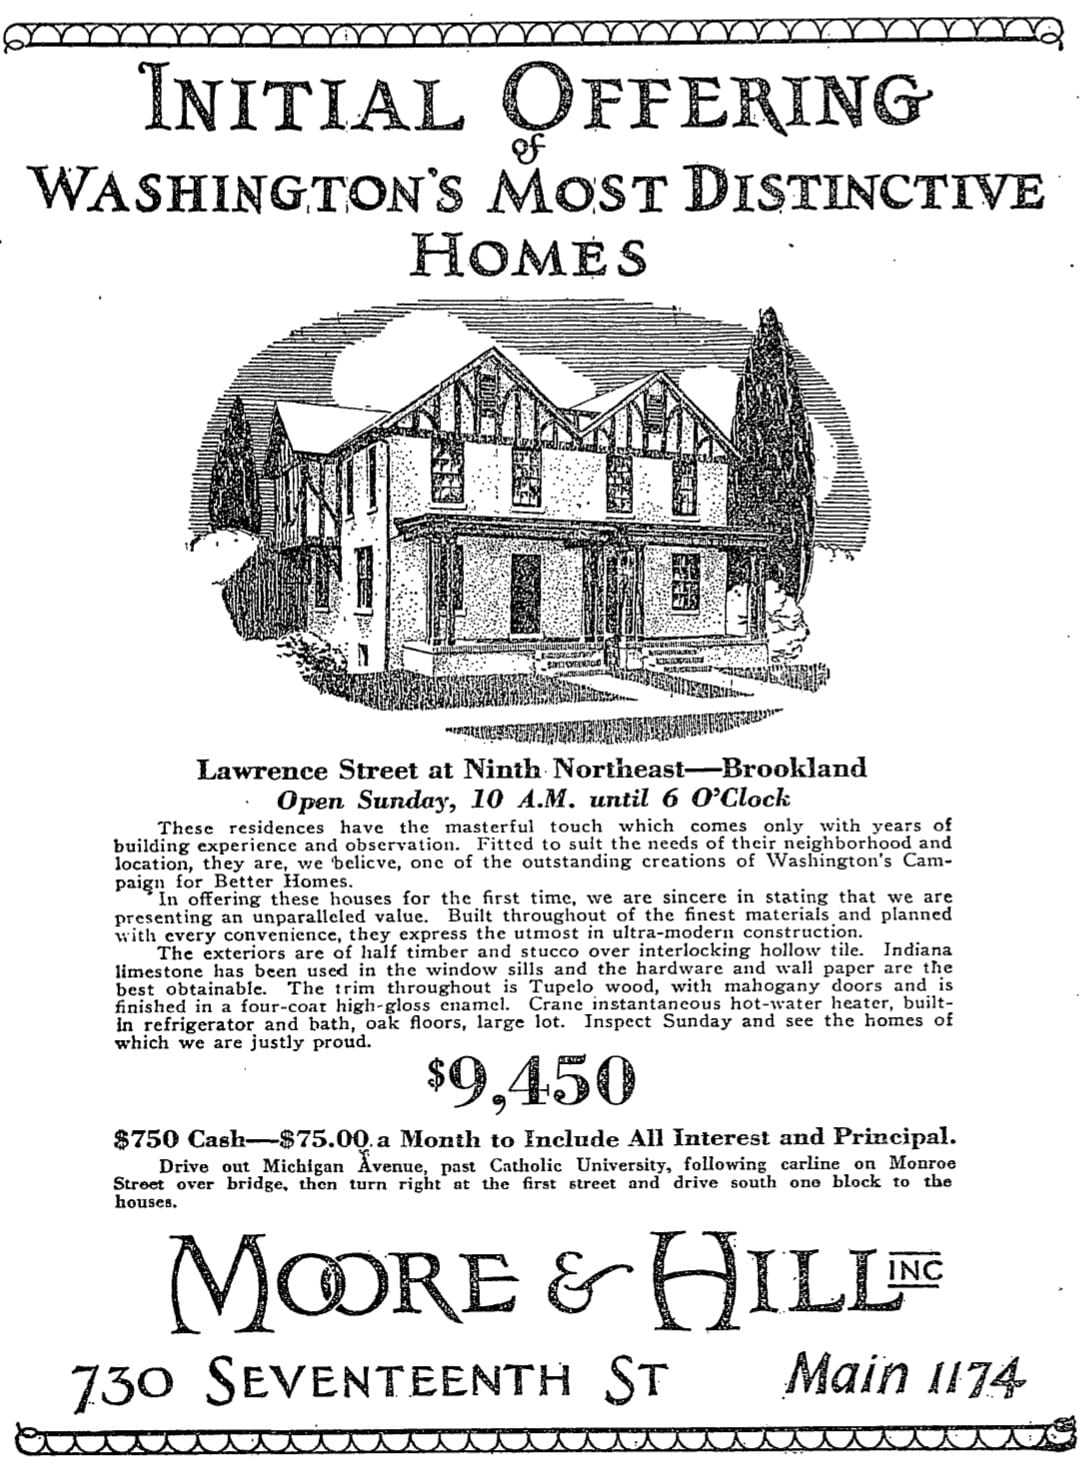 1926 Brookland real estate advertisement